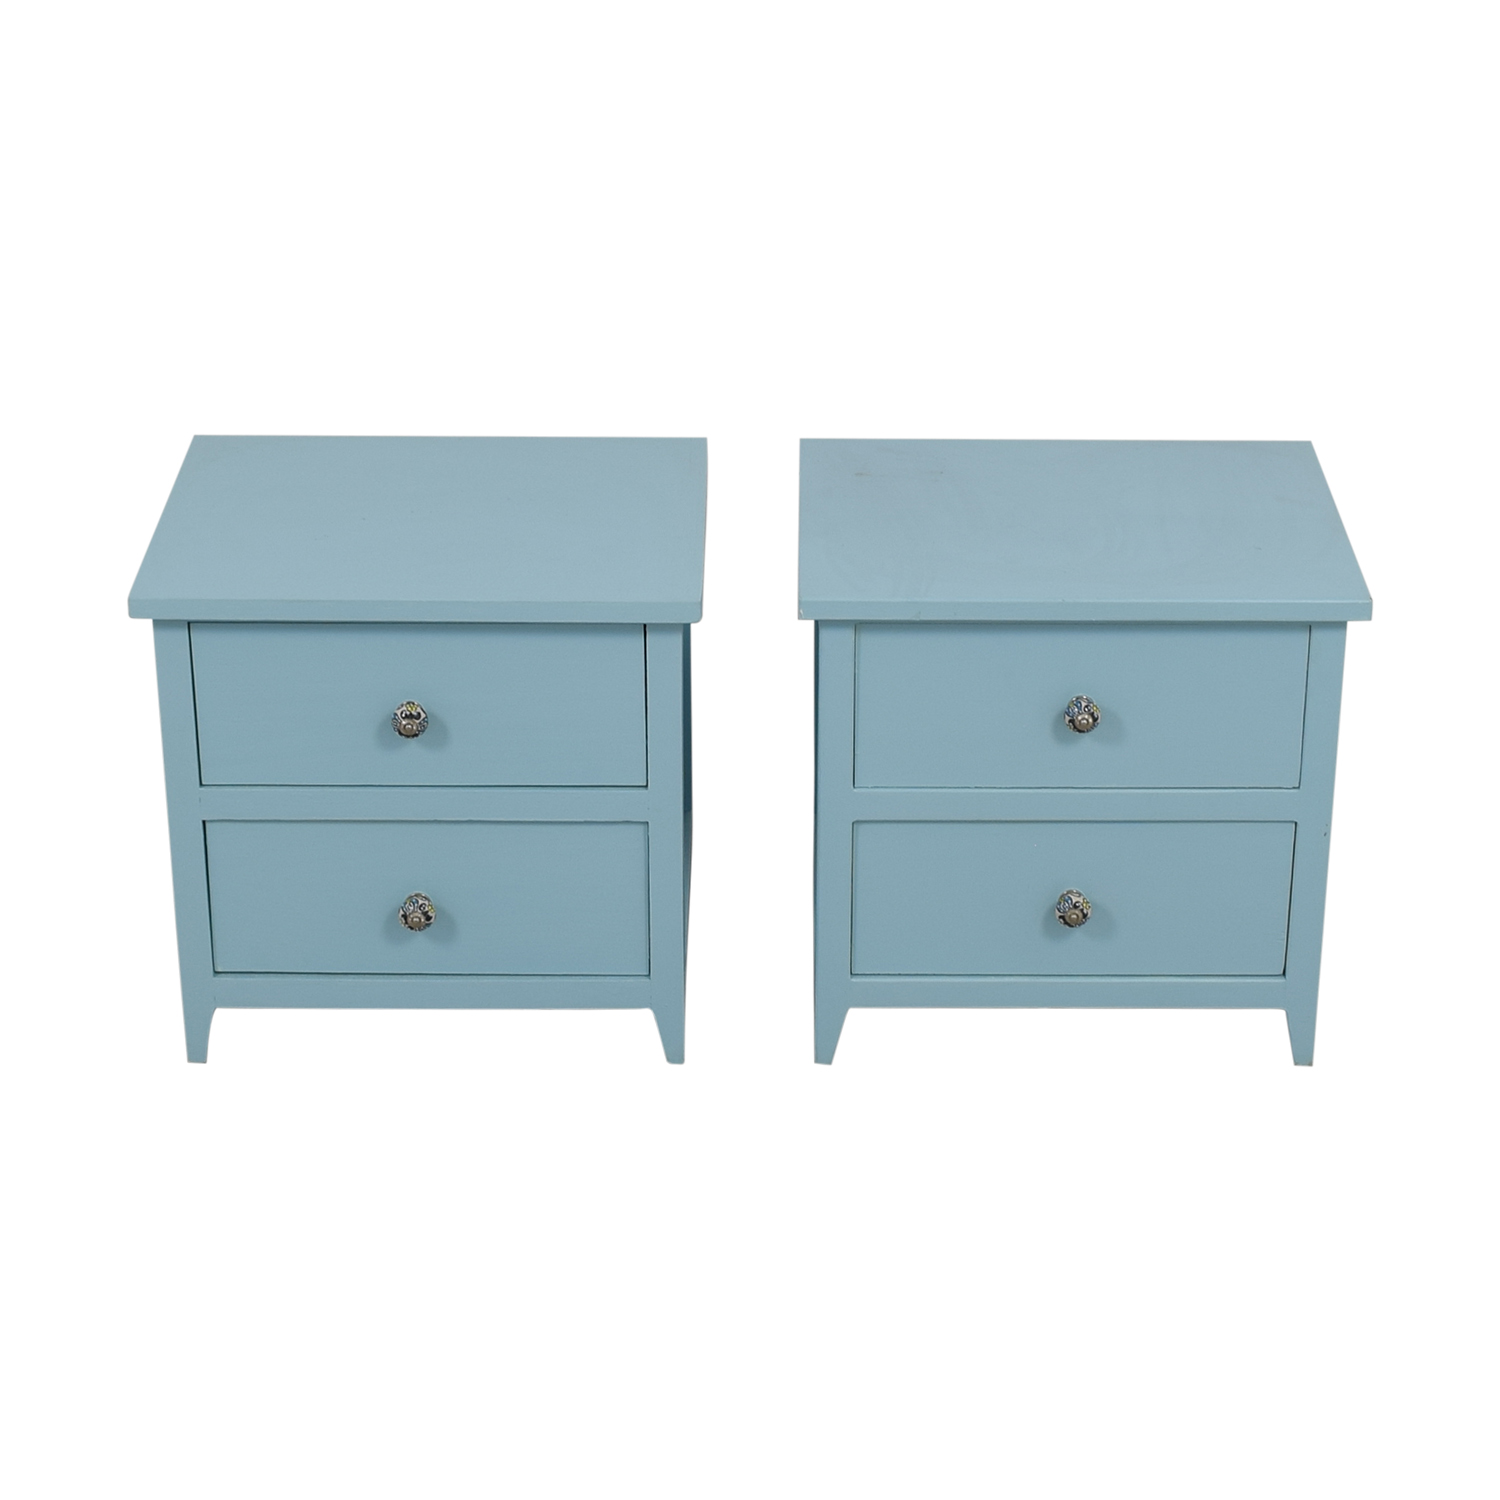 Gothic Cabinet Craft Gothic Cabinet Craft Light Blue Wood Two-Drawer Night Stands nyc